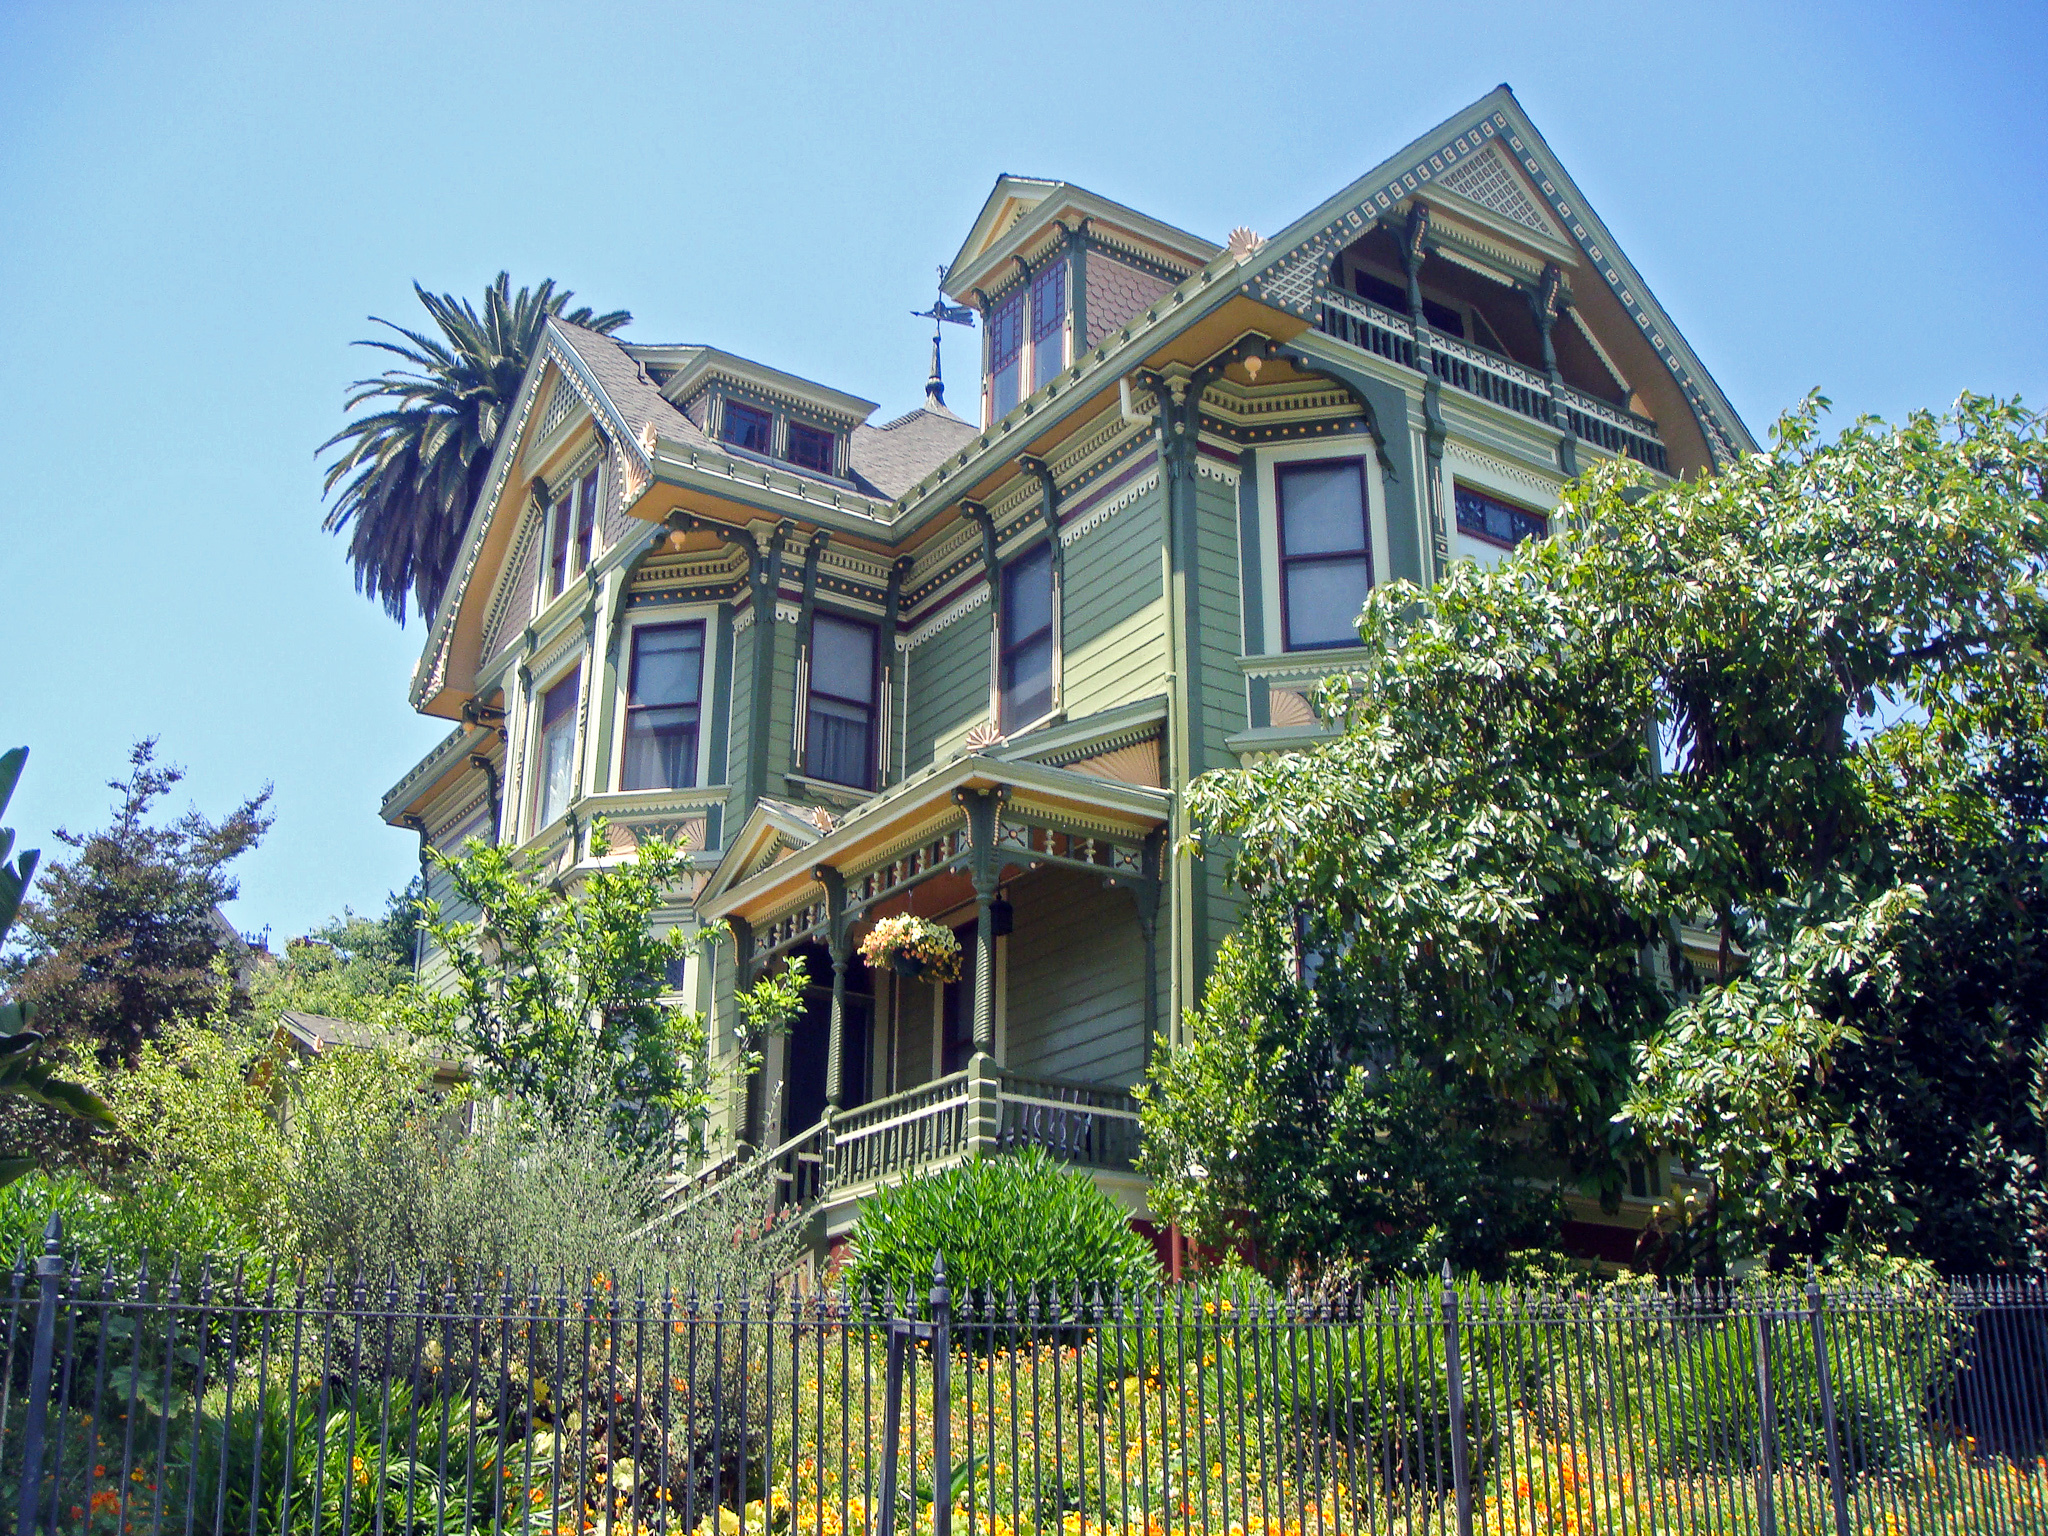 Carroll Avenue, Angelino Heights